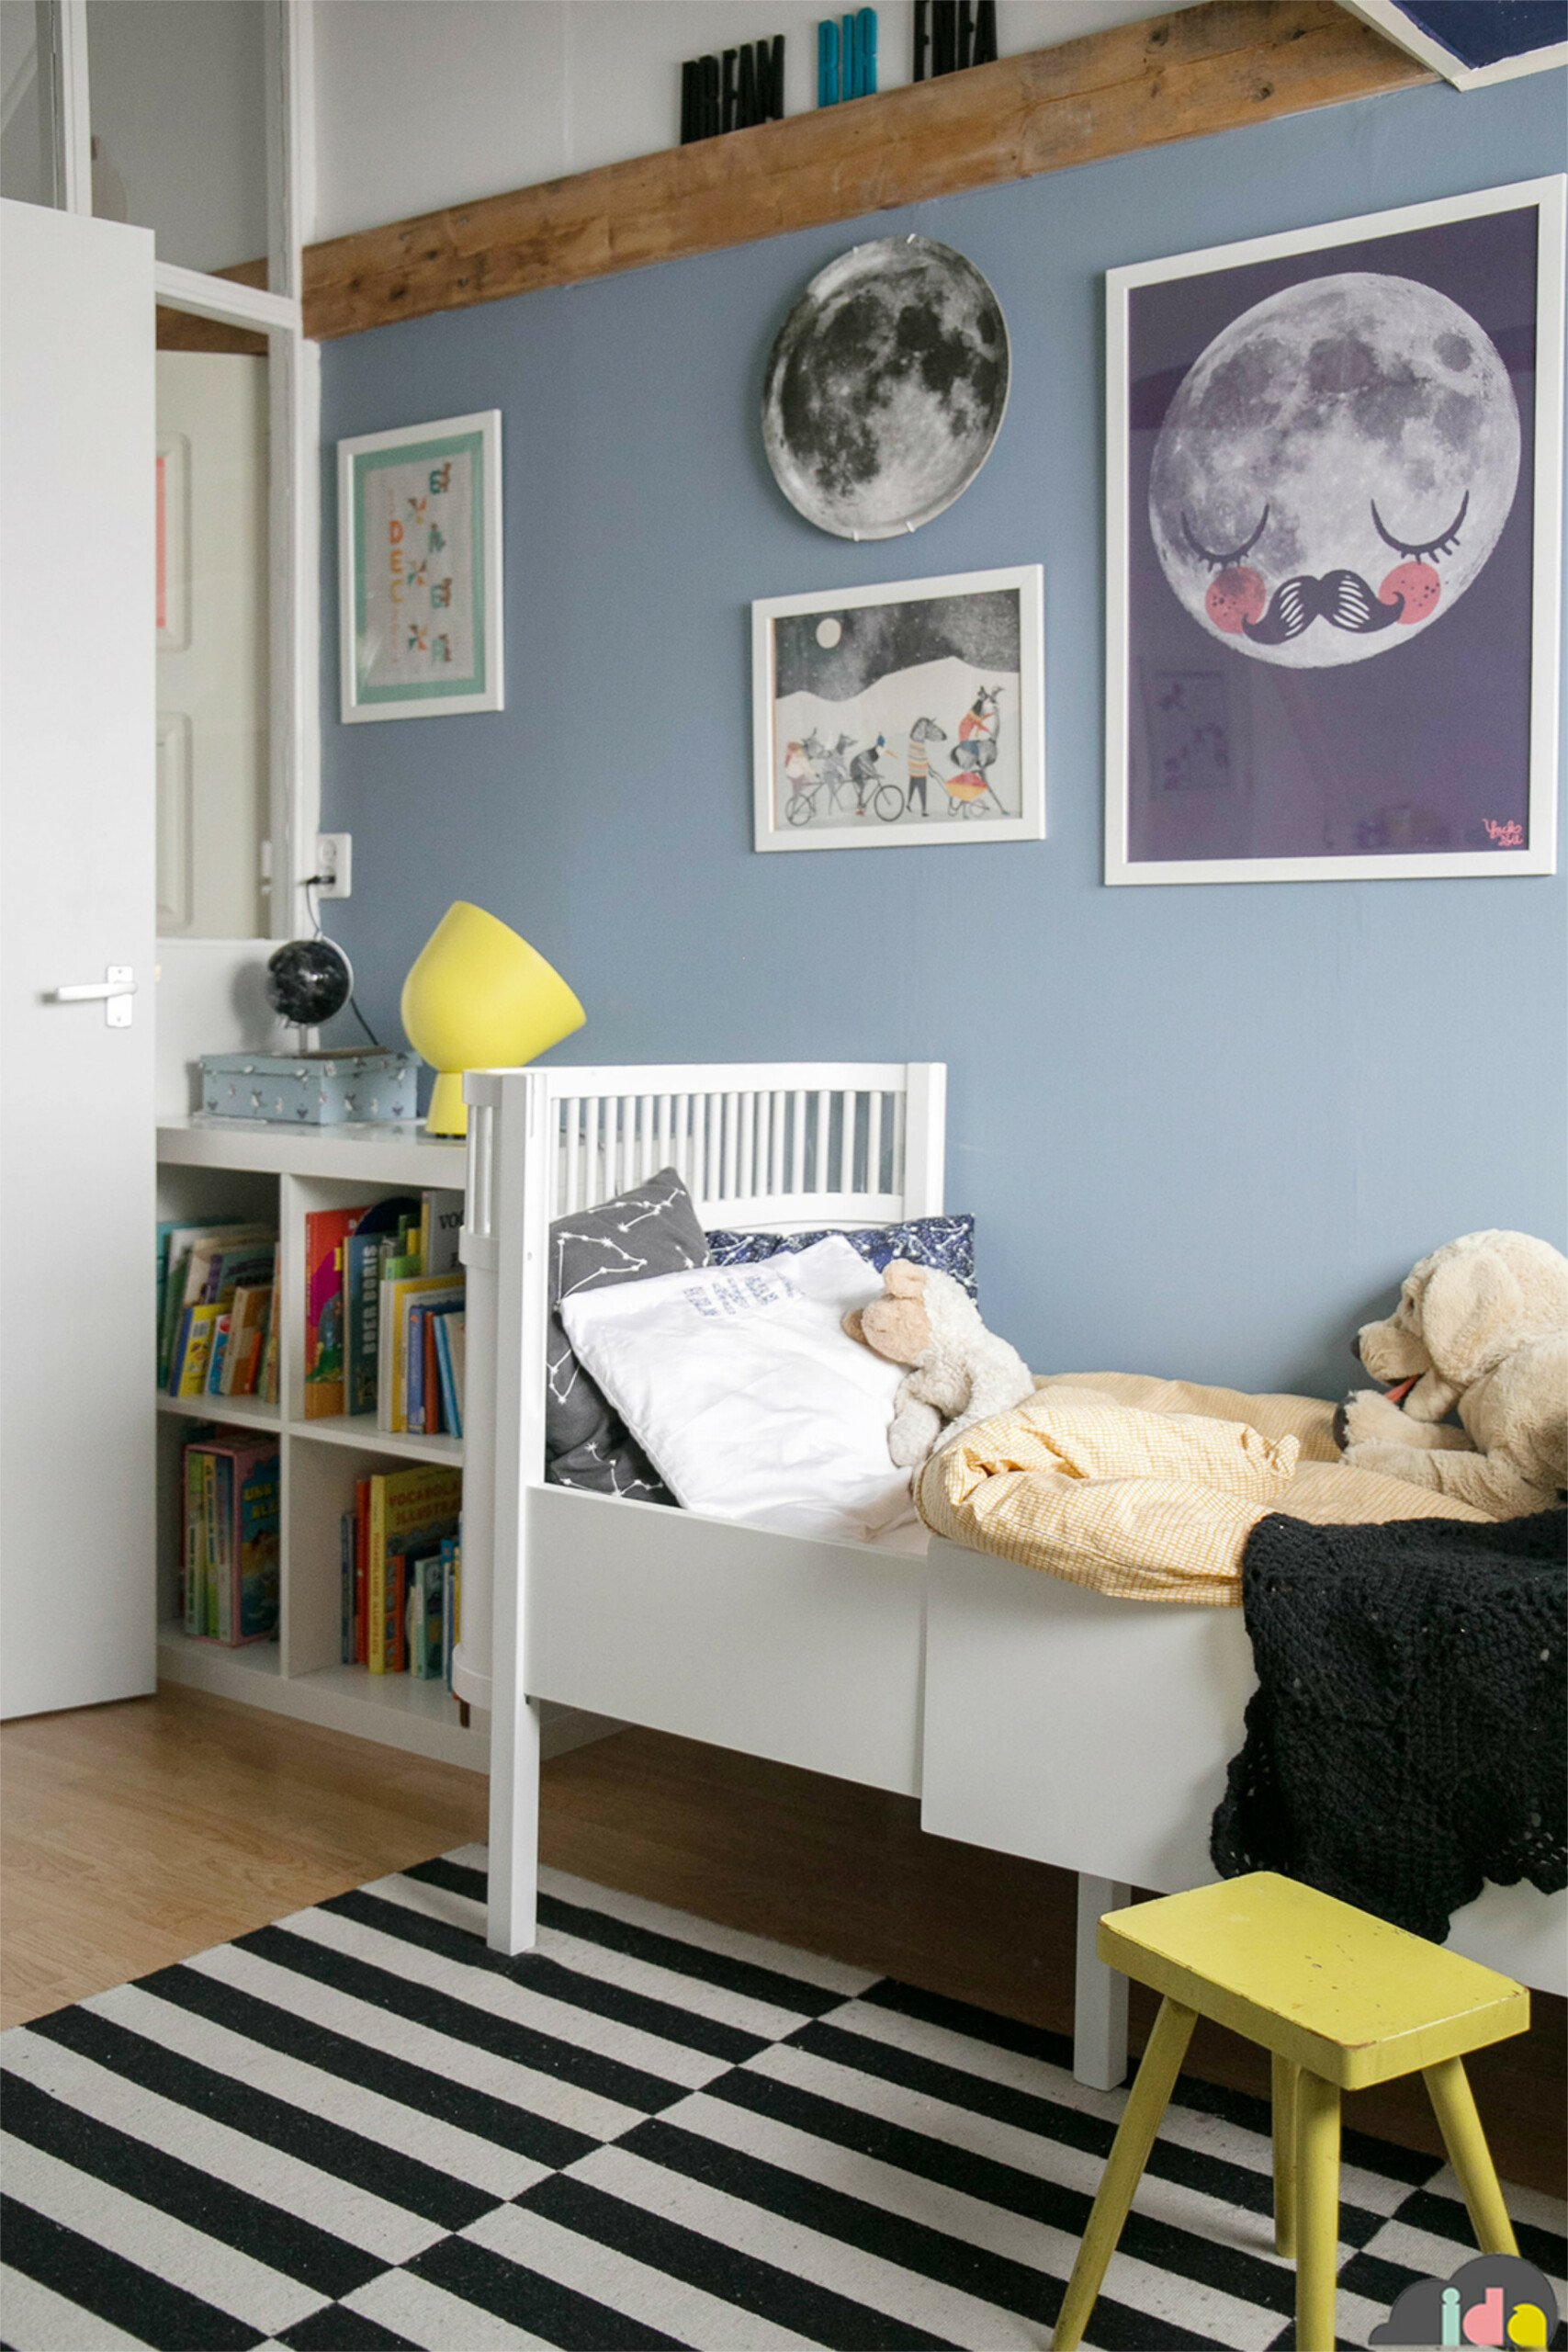 IDAinteriorlifestyle 8 kids room colourful home scaled